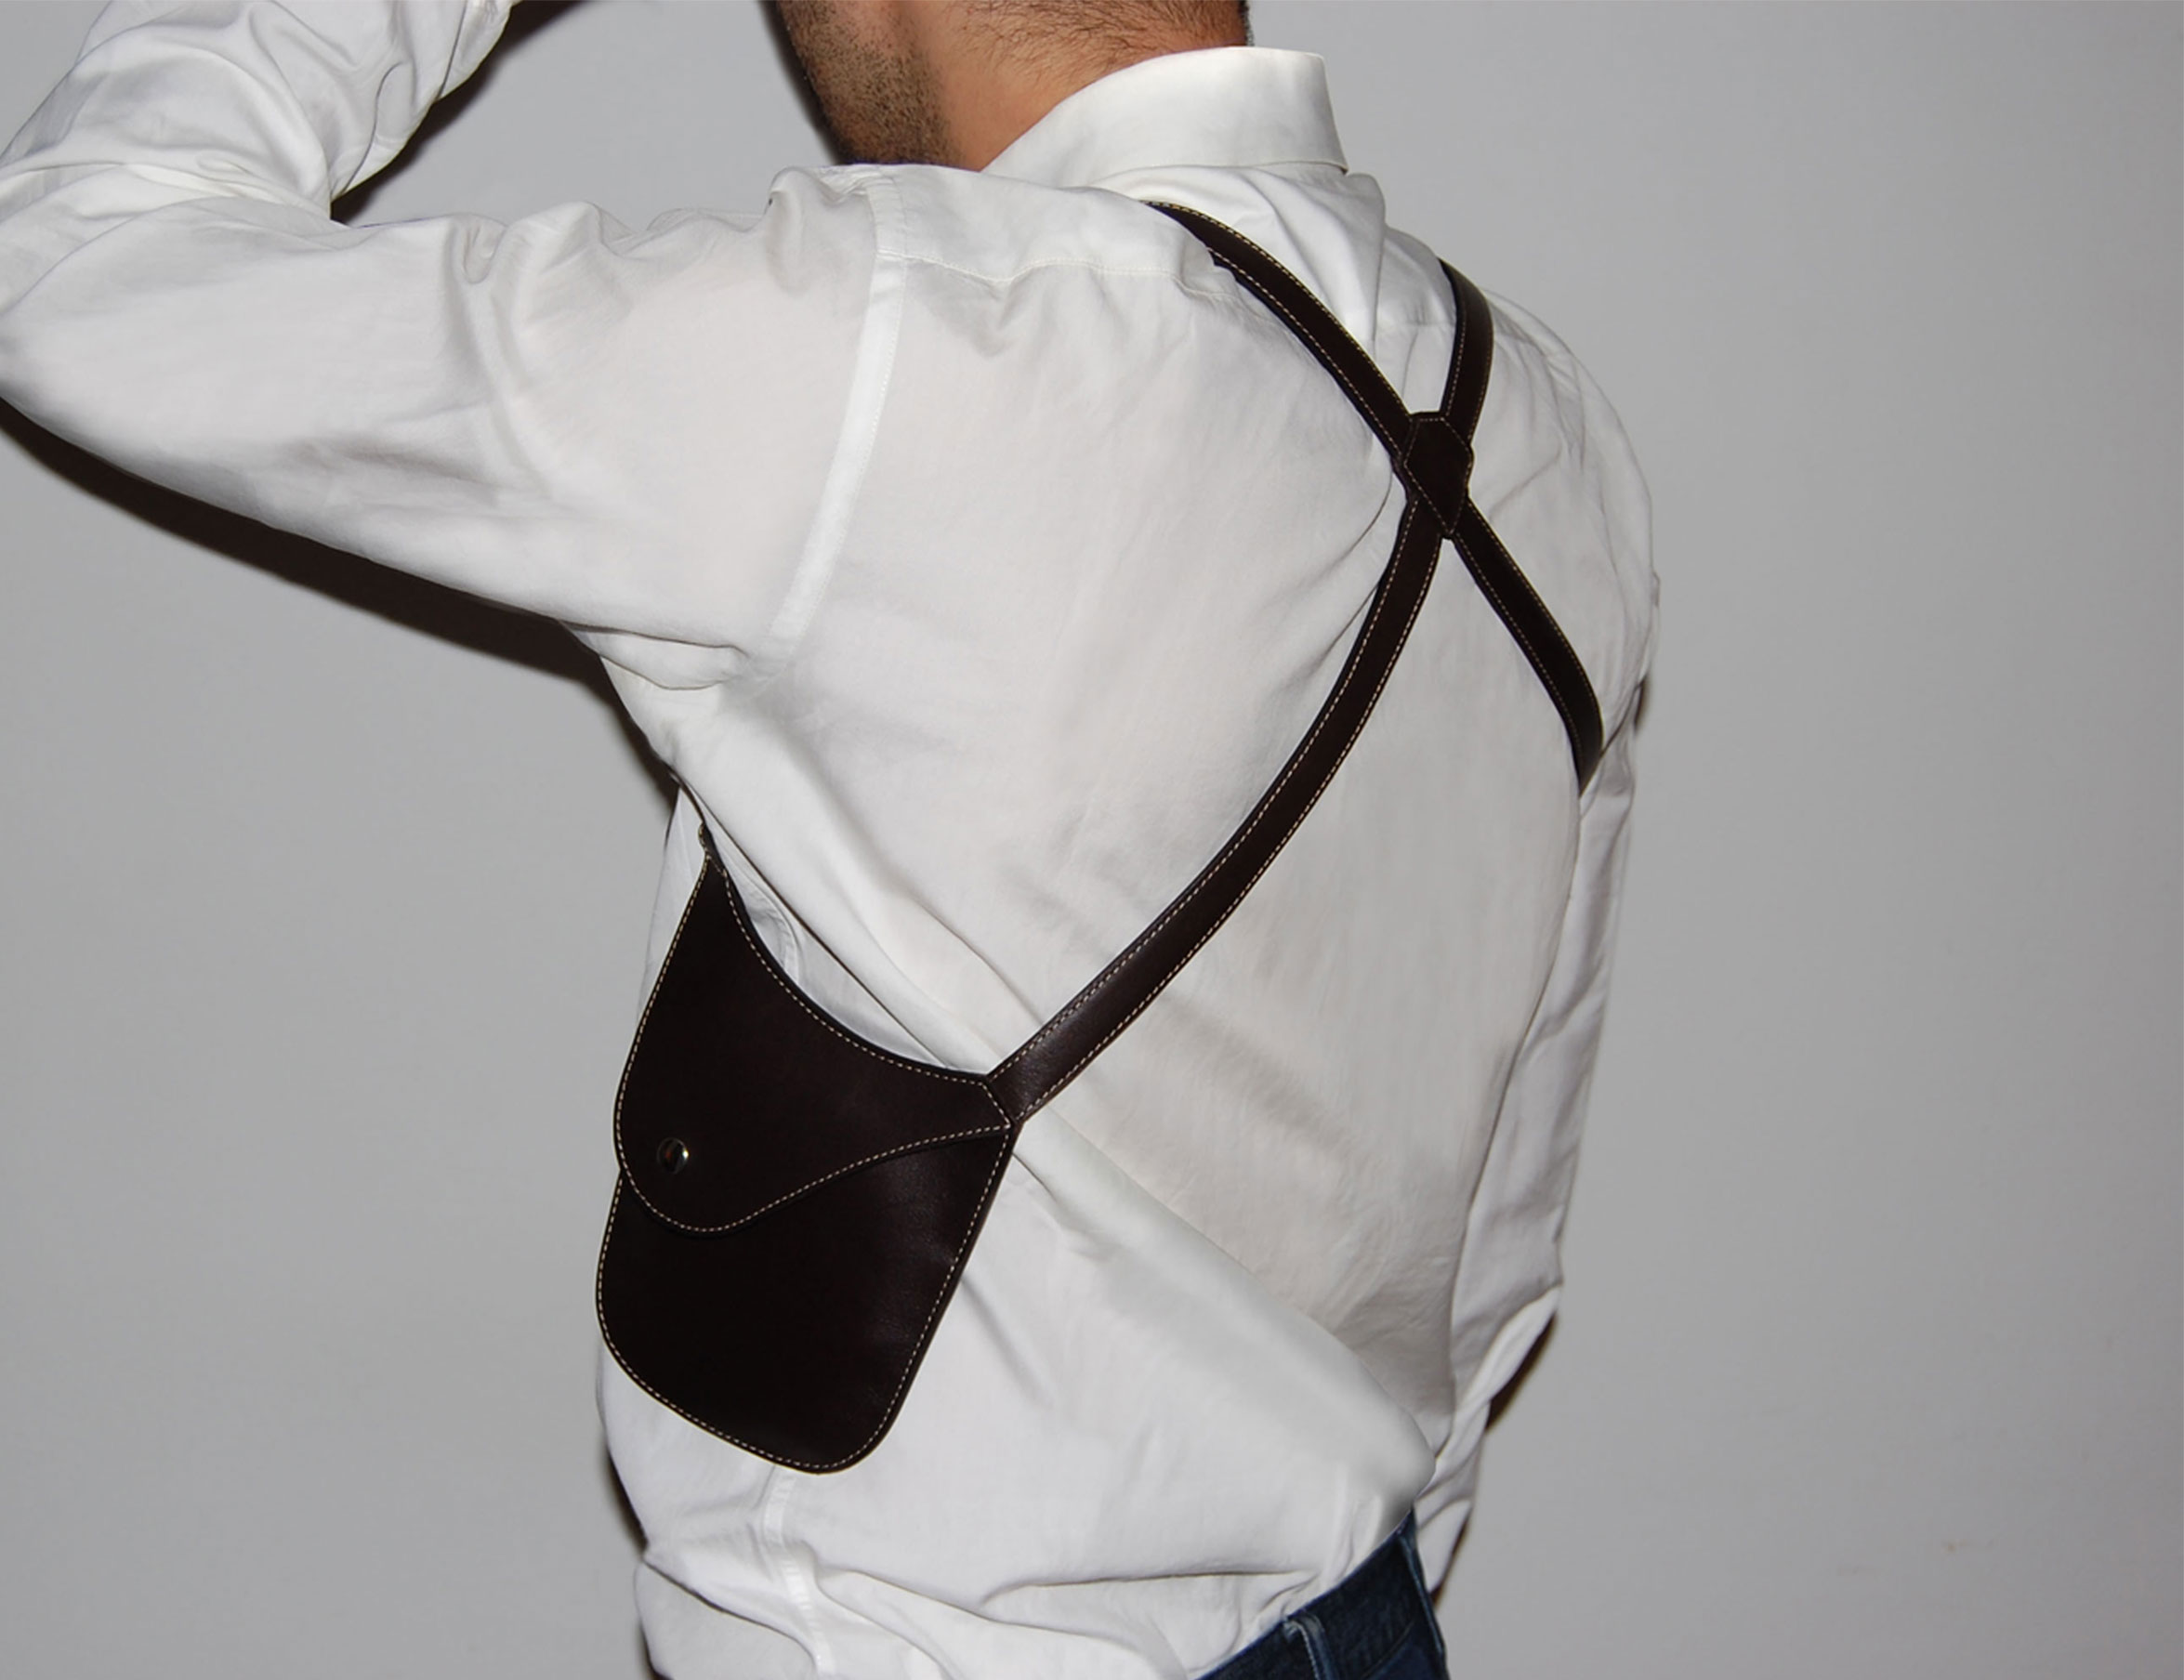 shoulder holster on white shirt